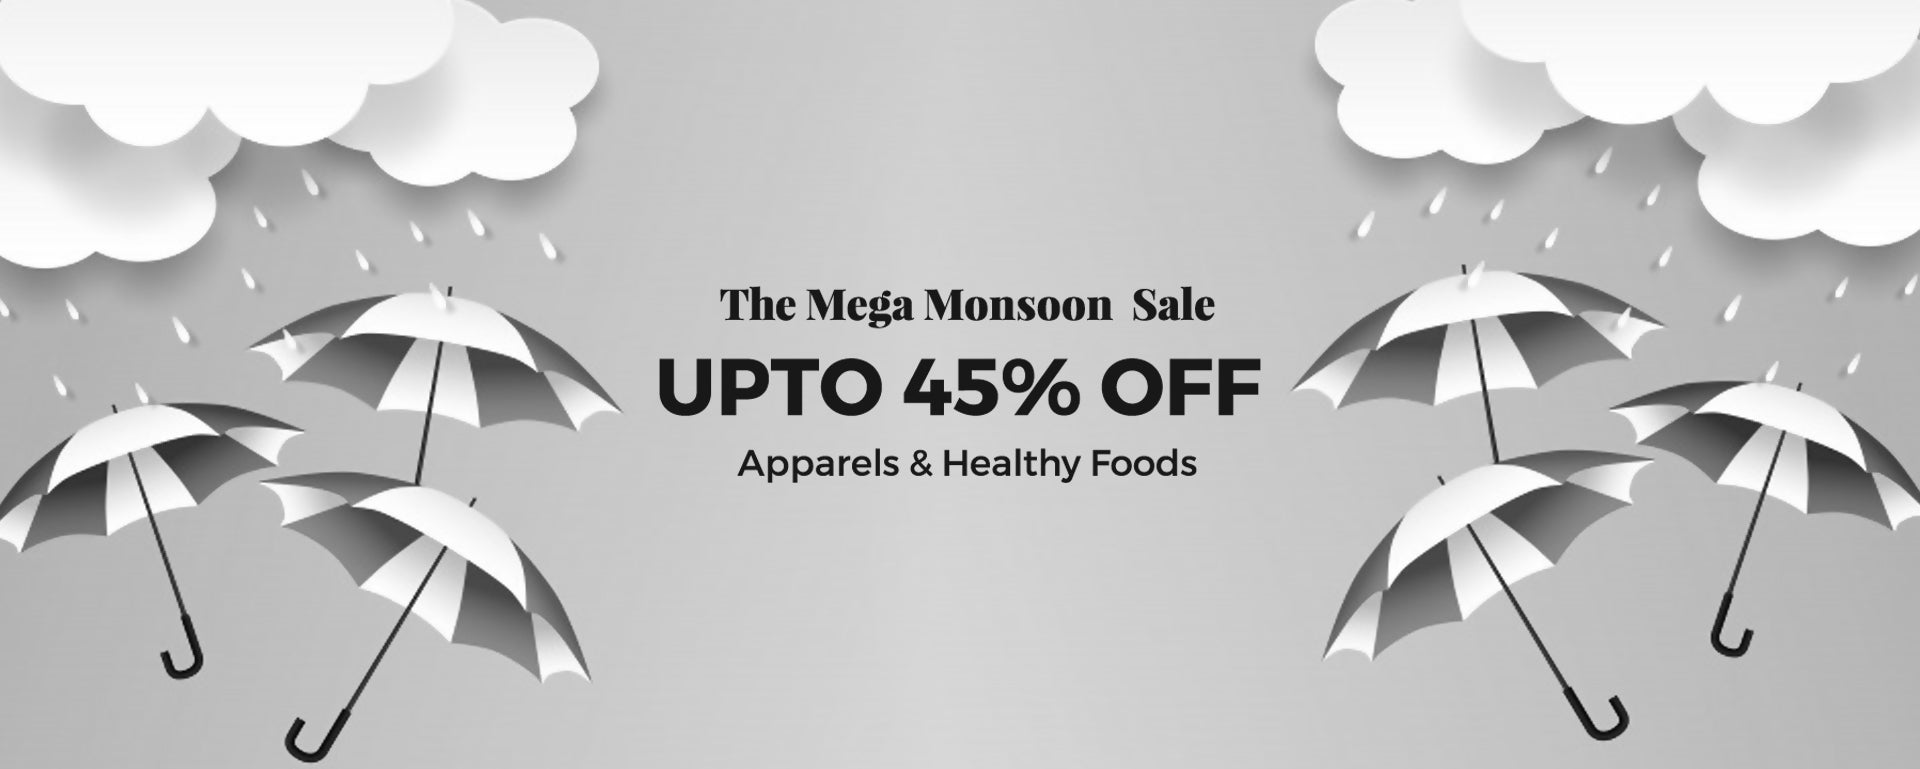 The Mega mid year sale with upto 45% off across healthy foods and apparels.Shop Now.